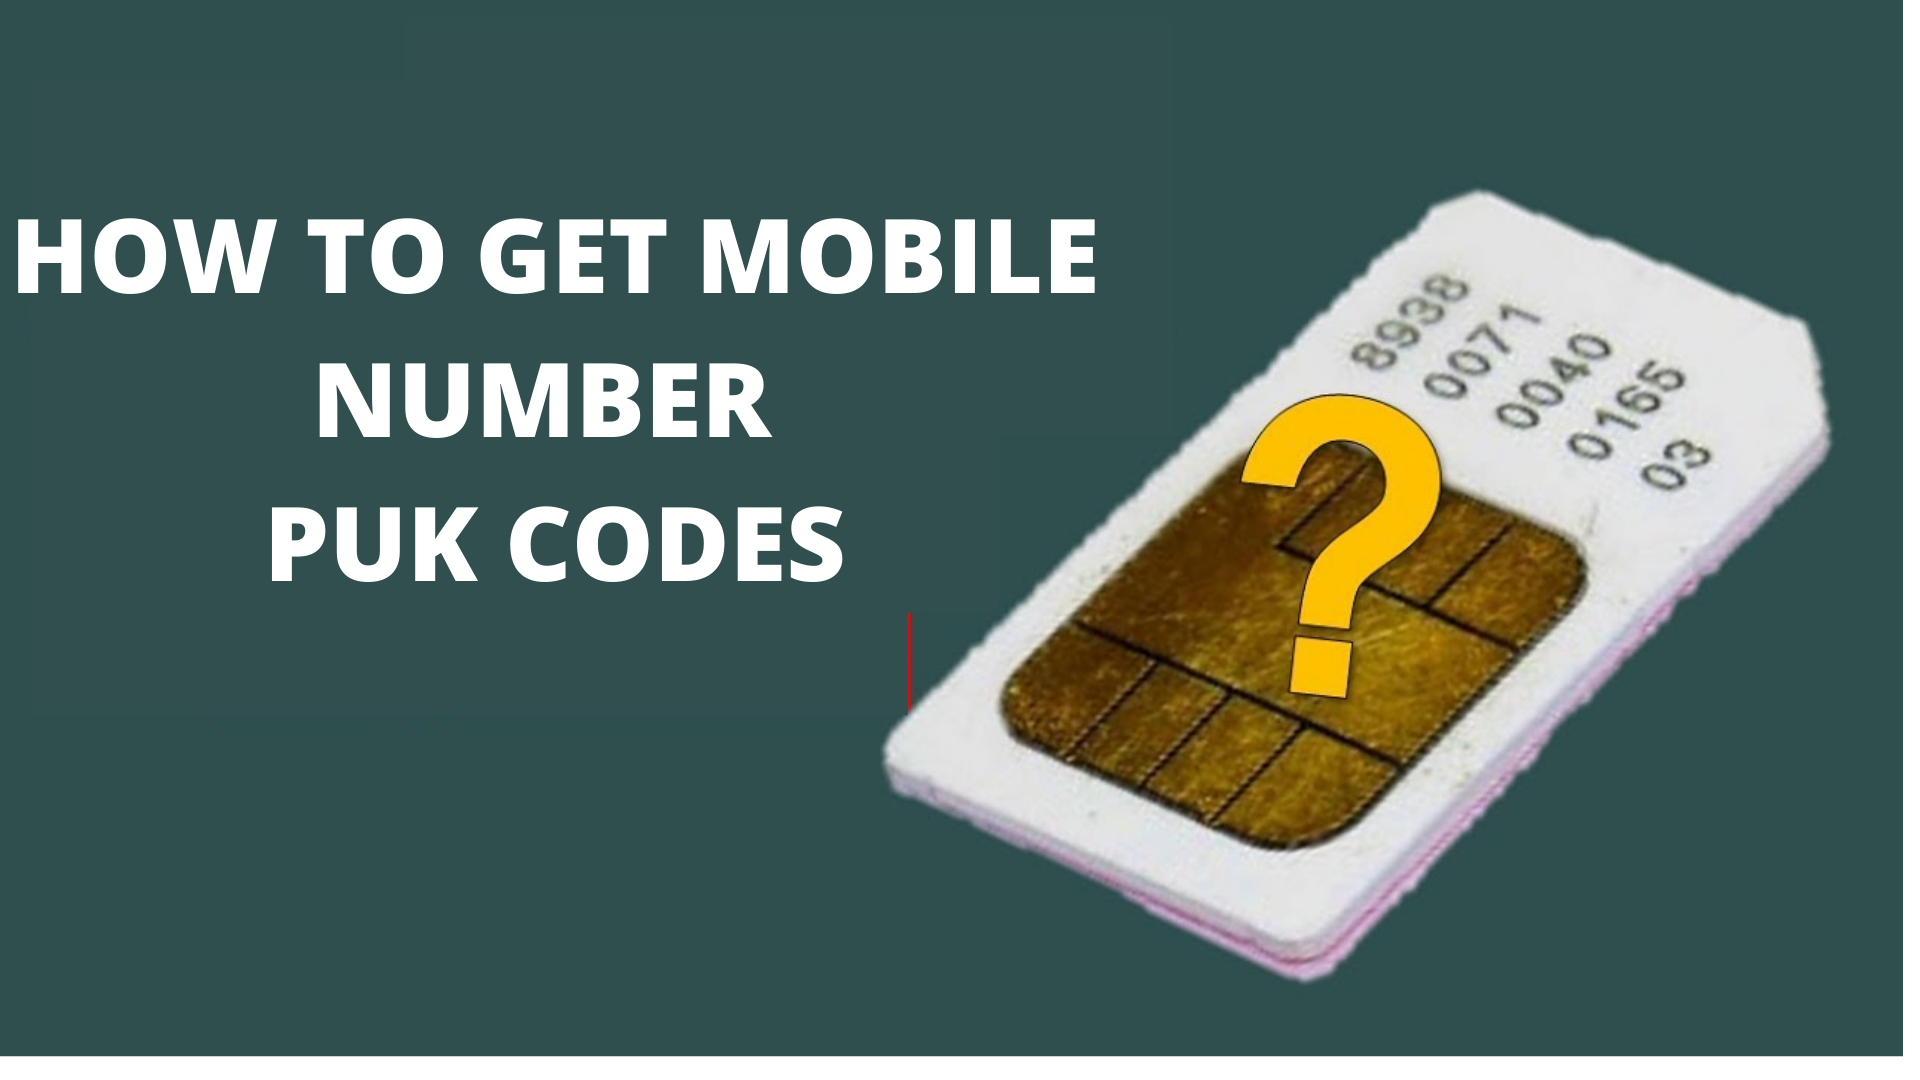 How to get mobile numbe puk codes